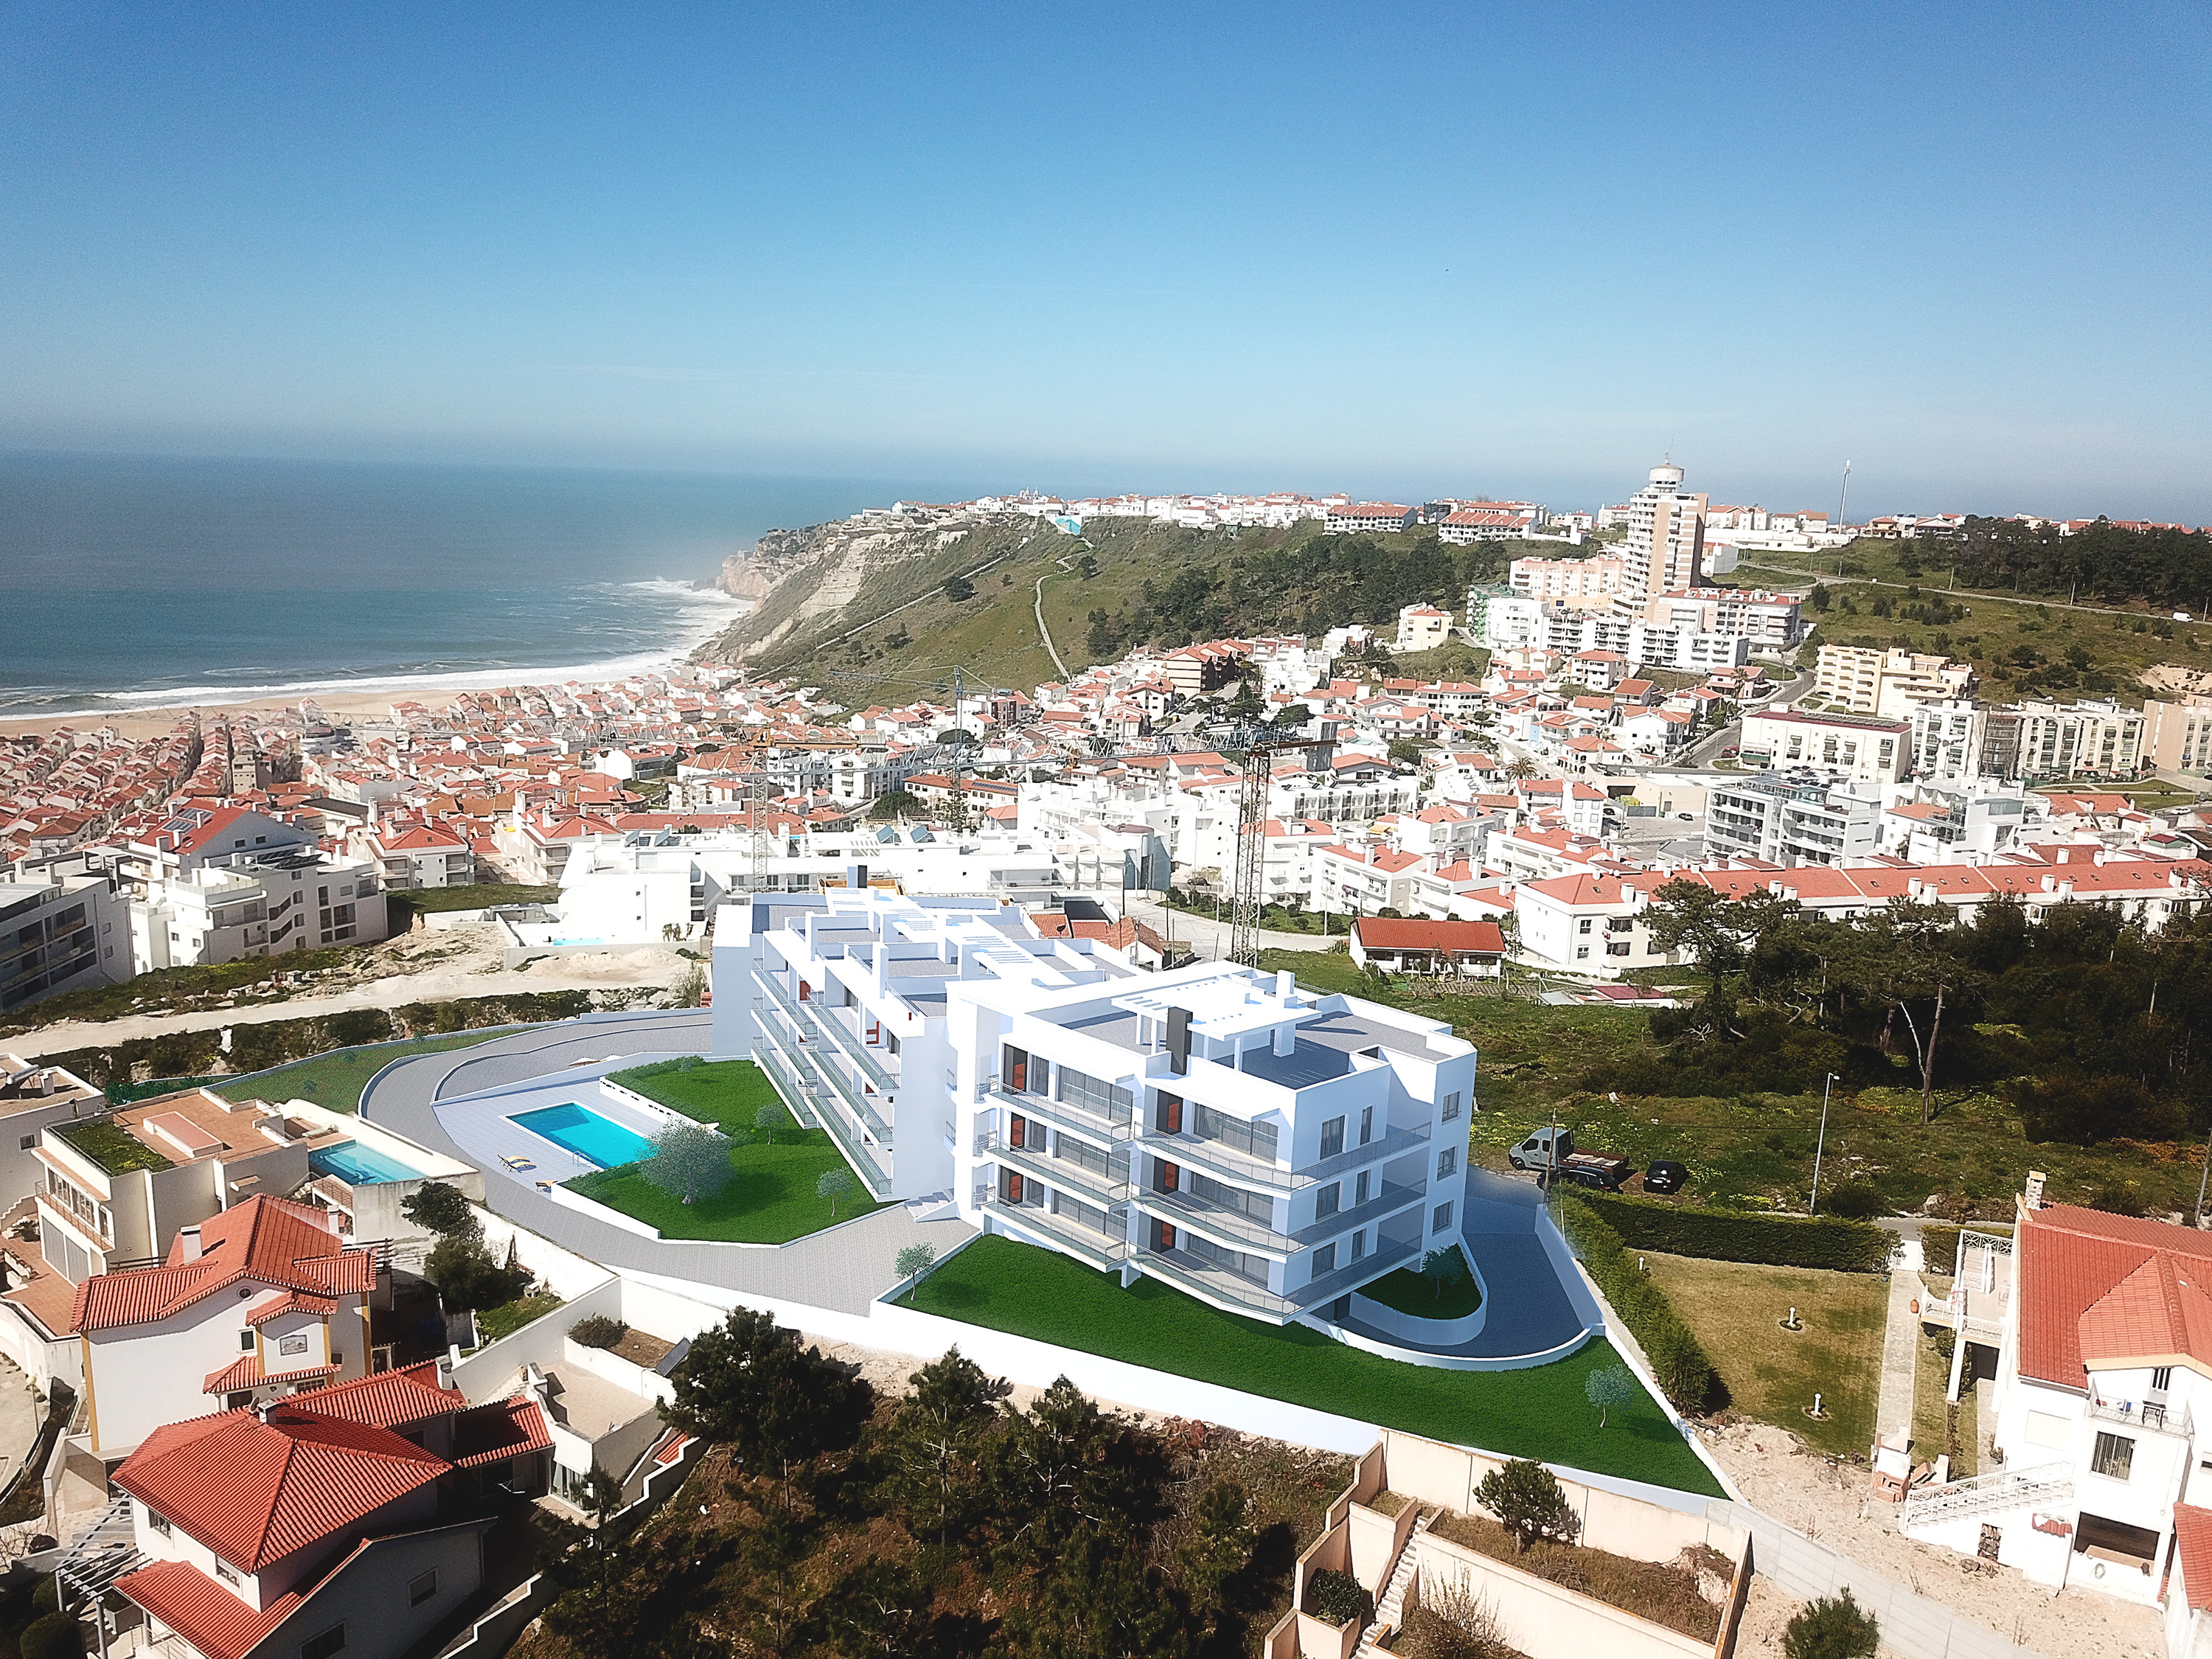 Apts under constr wide sea view, Nazaré